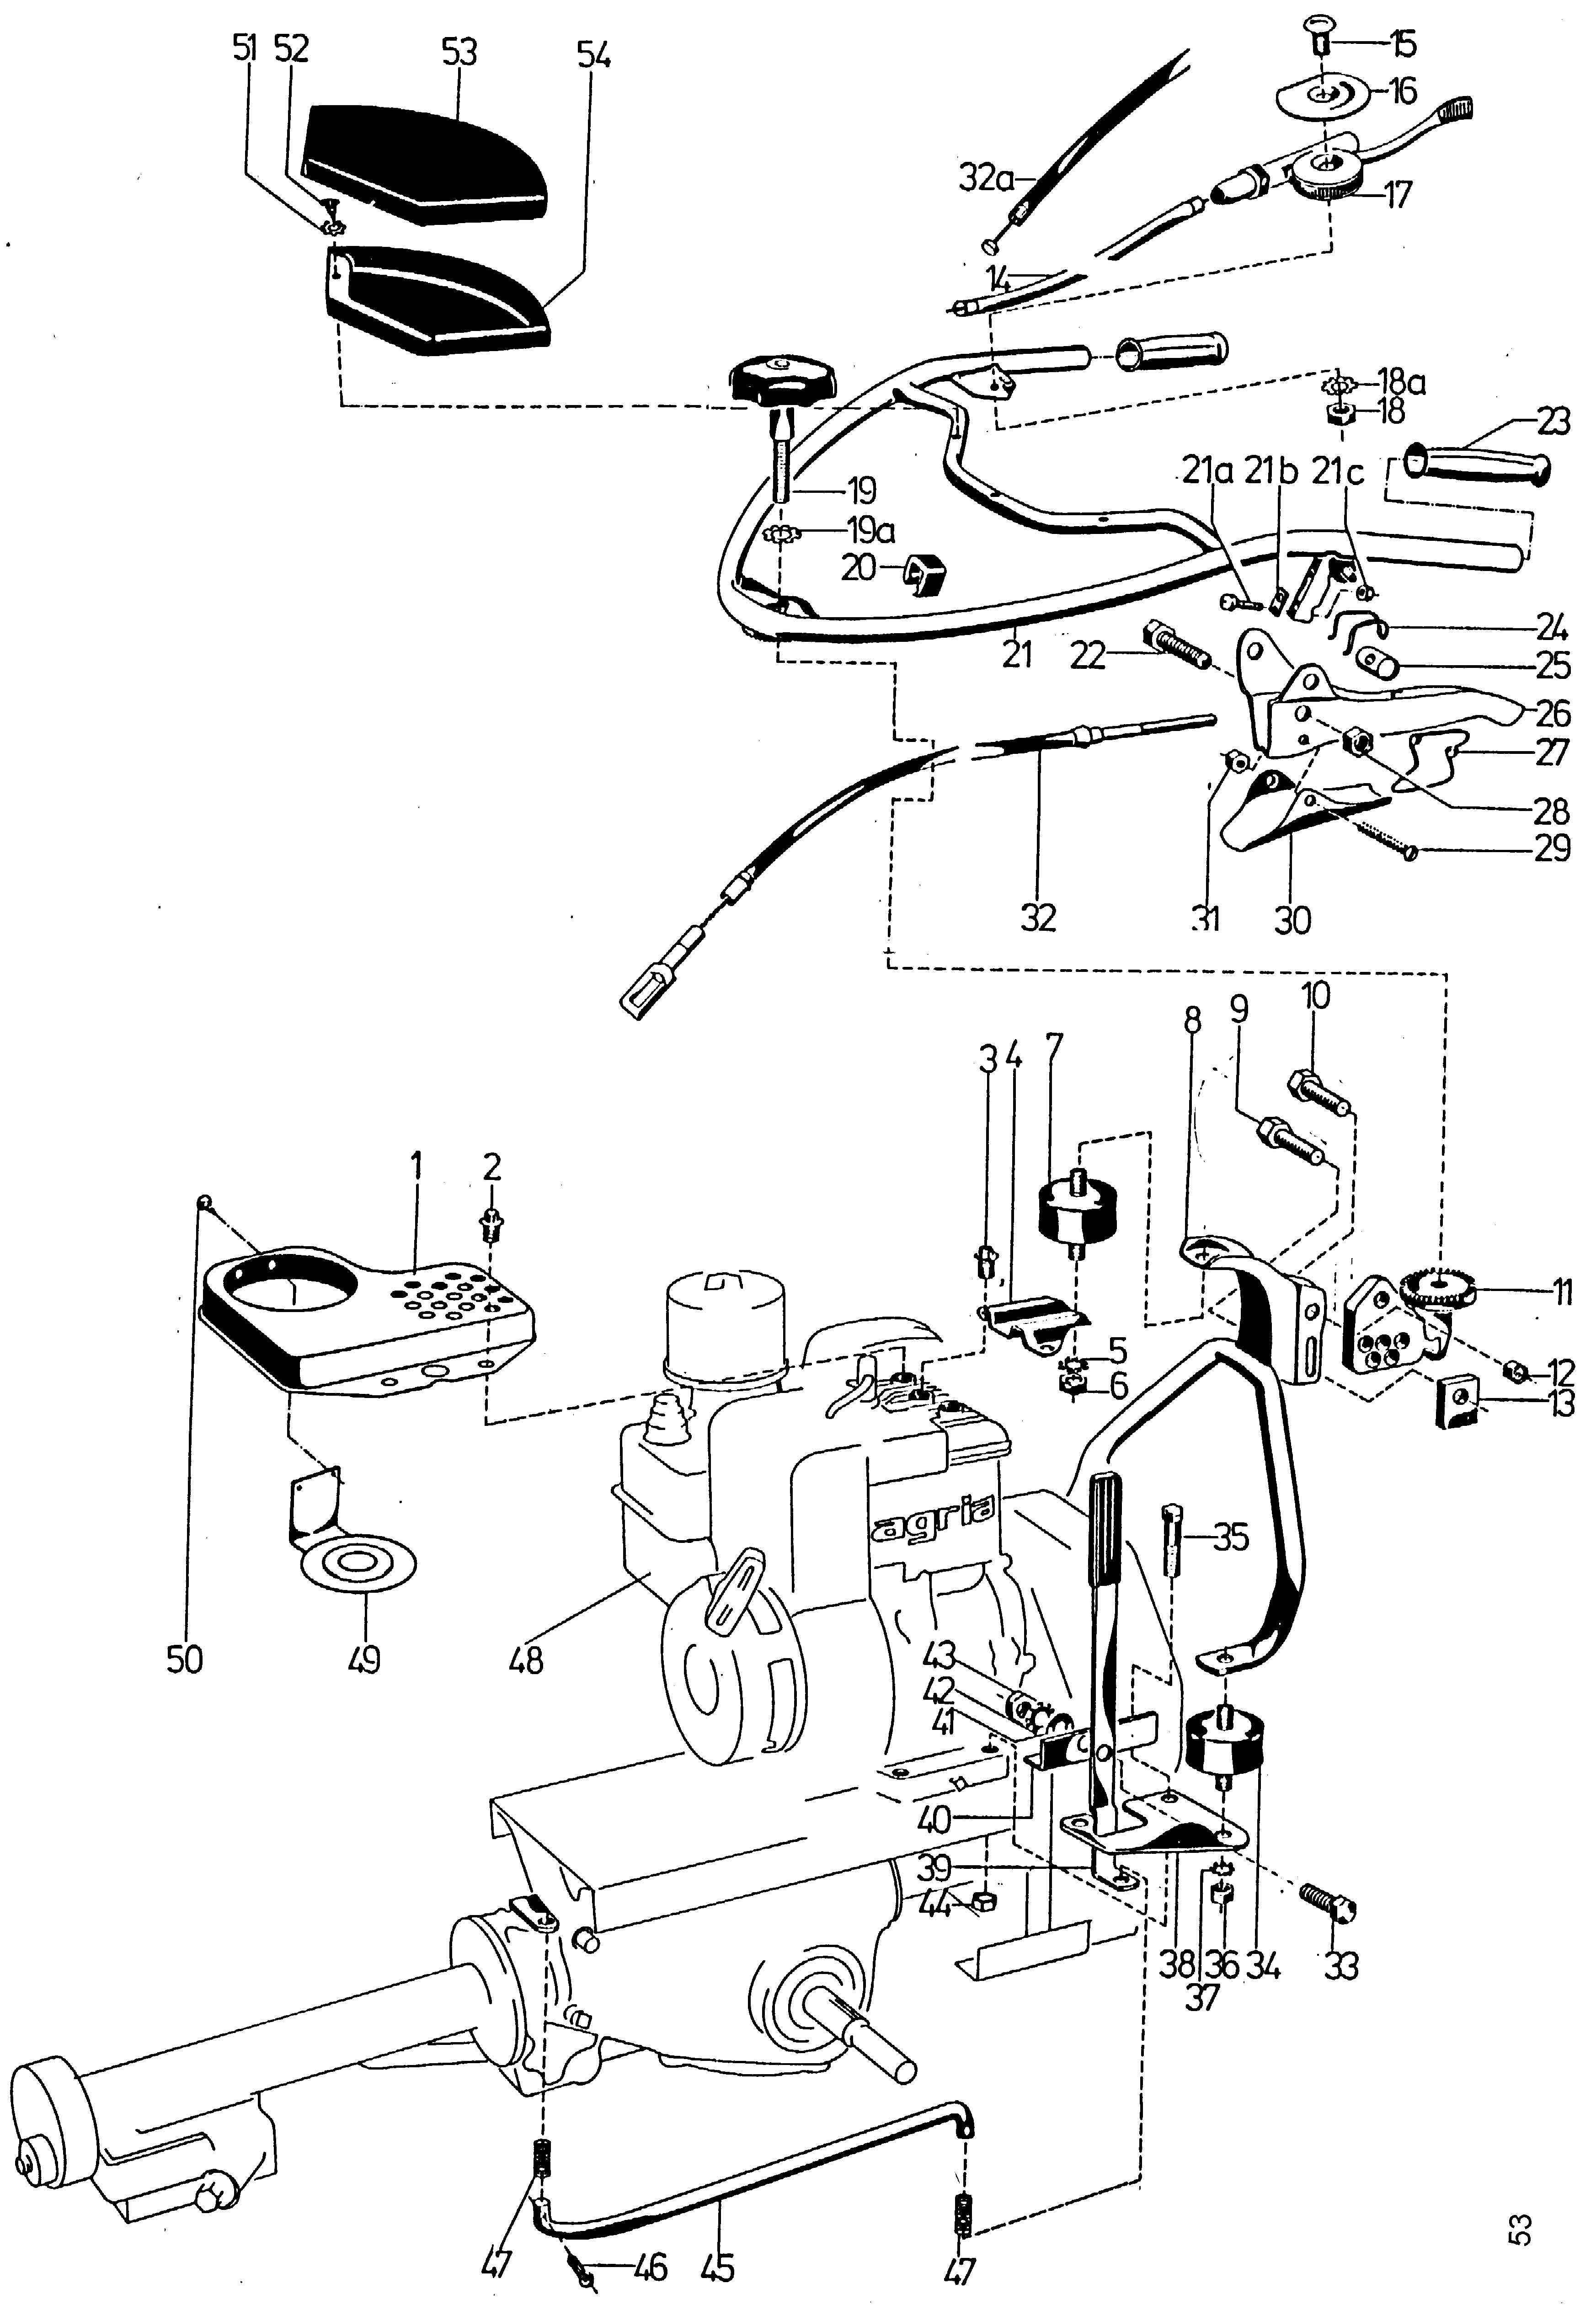 Lower steering arm, steering mechanism